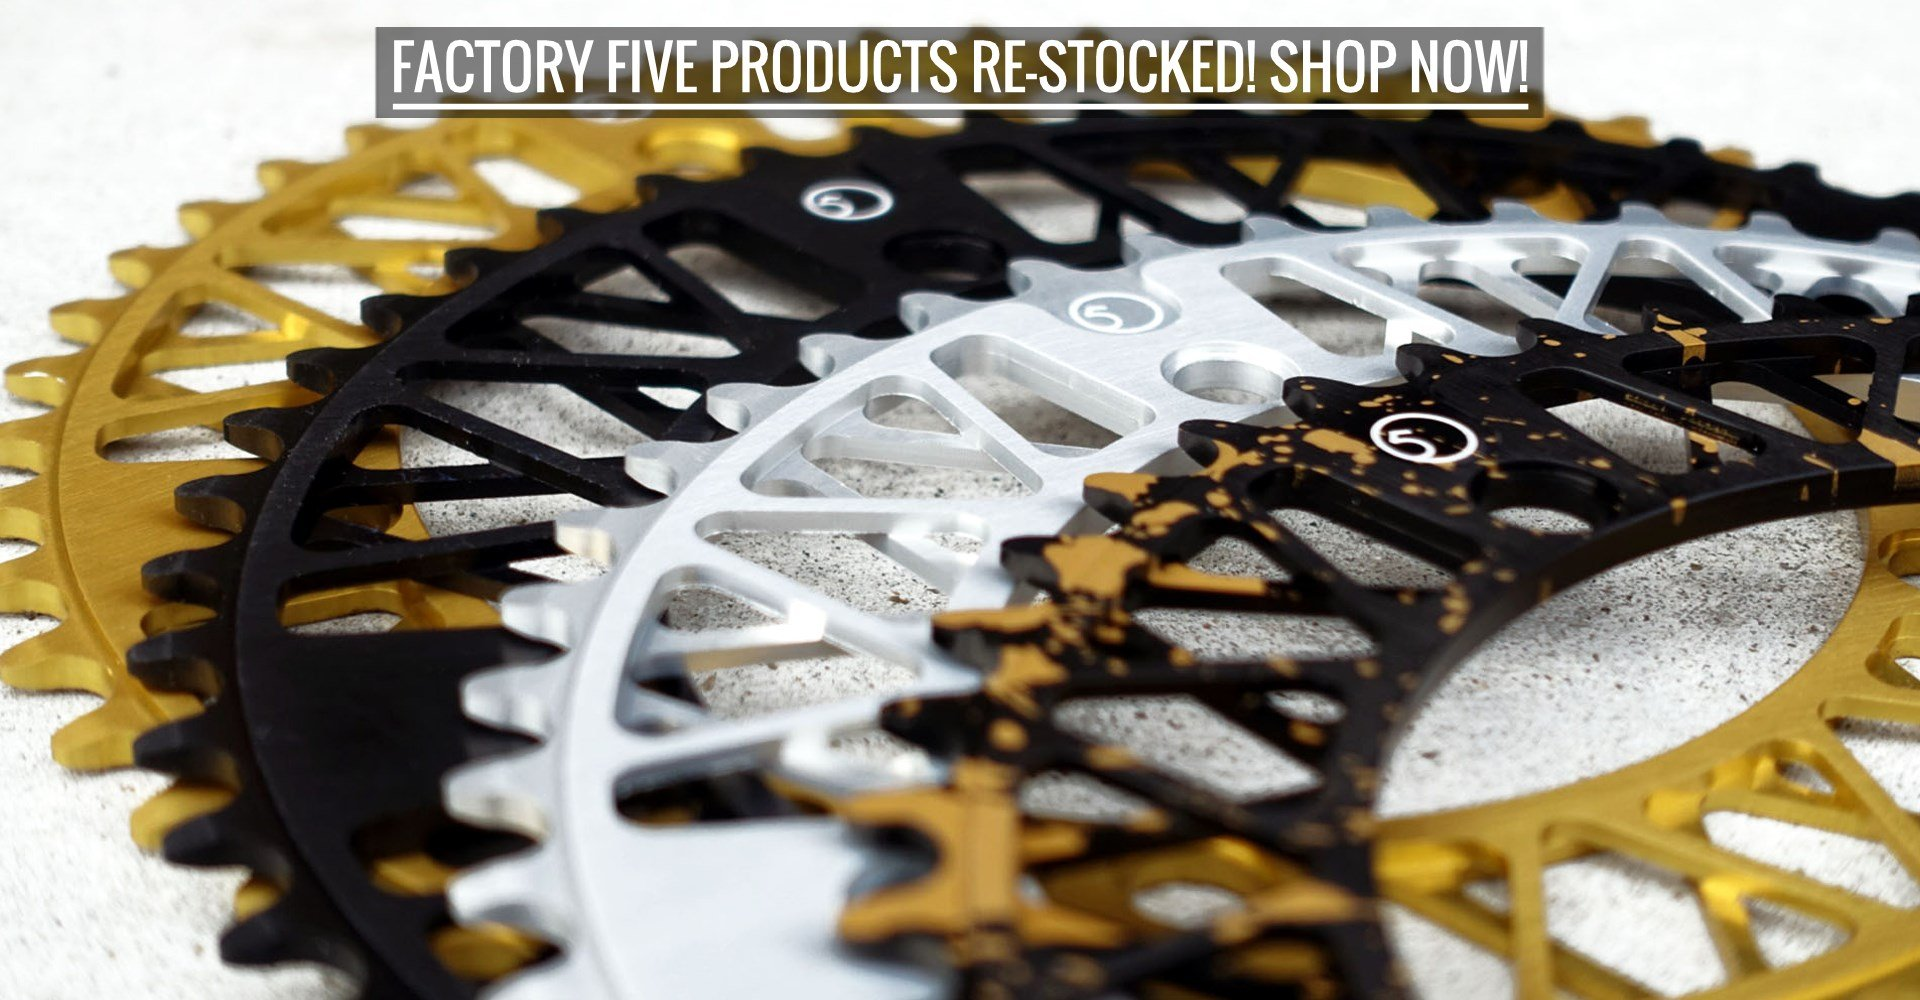 Shop Factory Five products now!